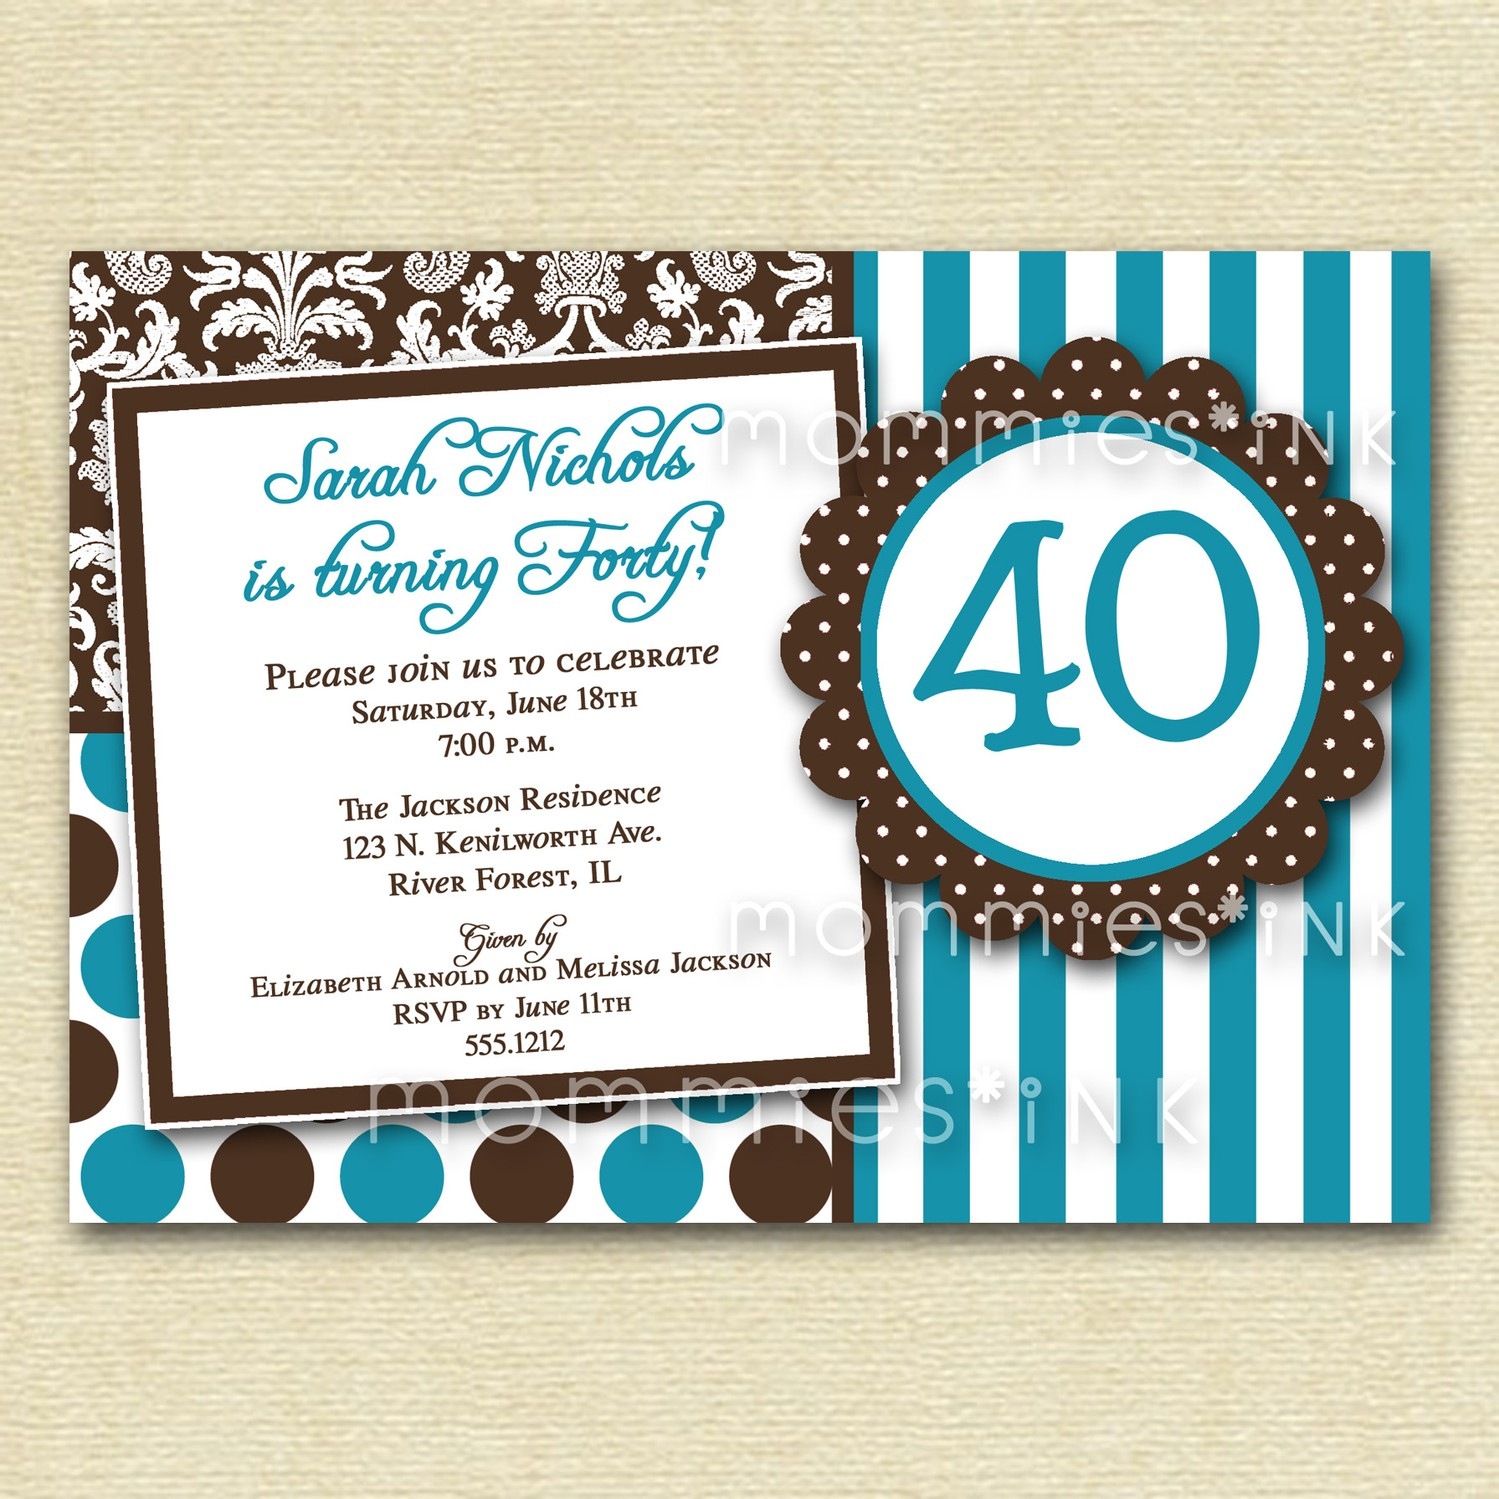 40th birthday pool party invitation wording ; sample-invitation-for-50th-birthday-party-40th-birthday-invitations-for-her-alanarasbach-com